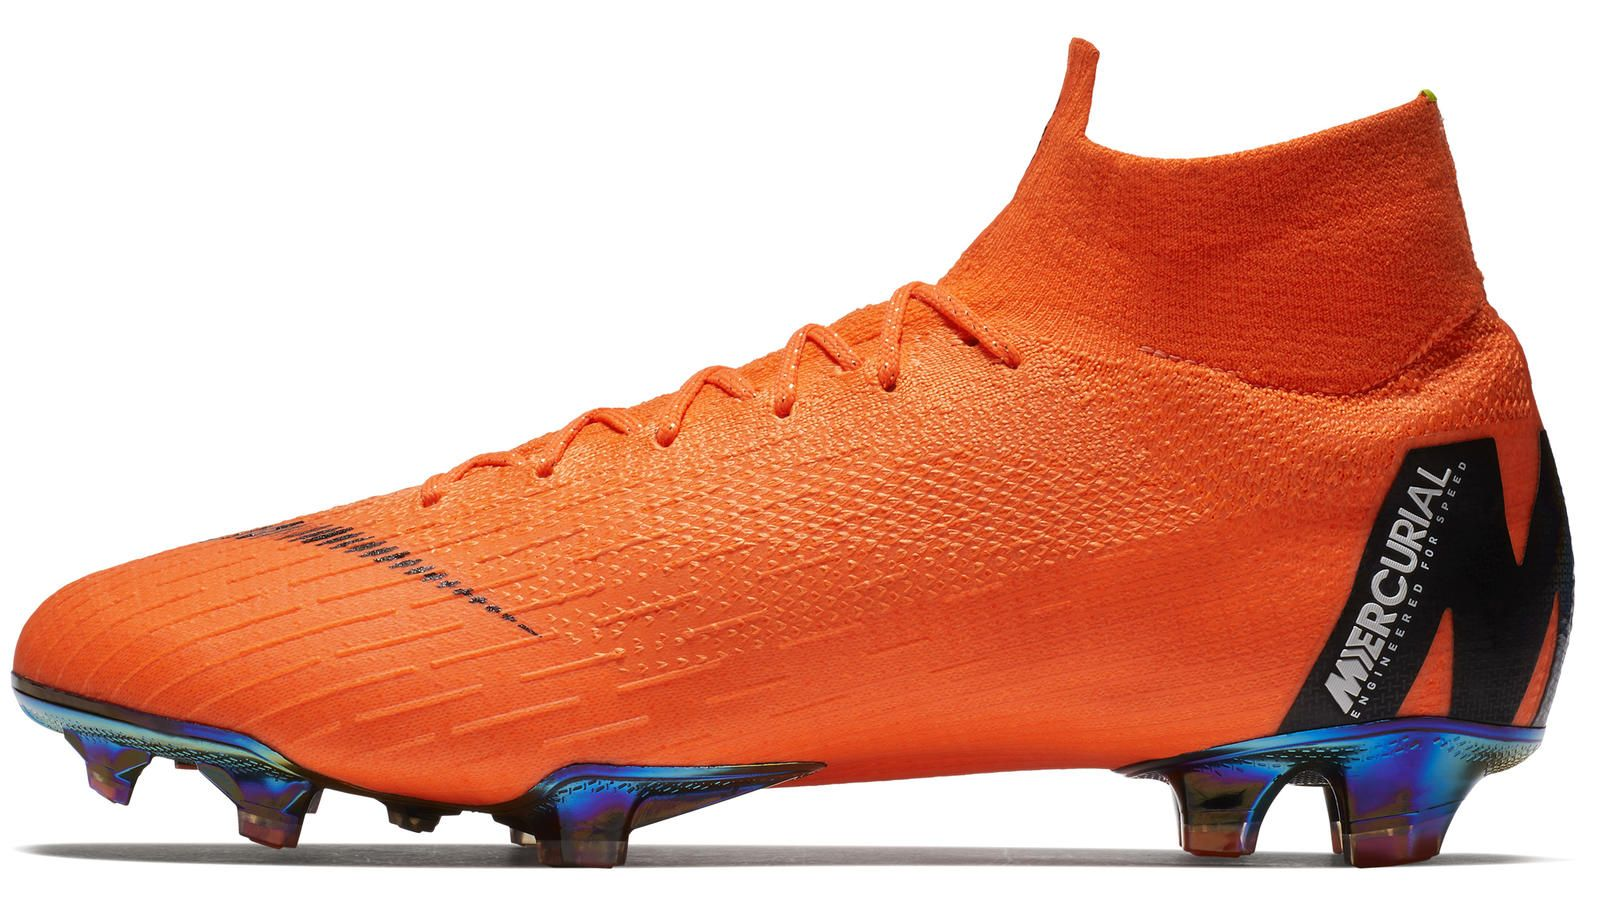 Nike Football Launches The 2018 Mercurial Superfly And Vapor 360 Boots Nike Football Superfly Football Boots